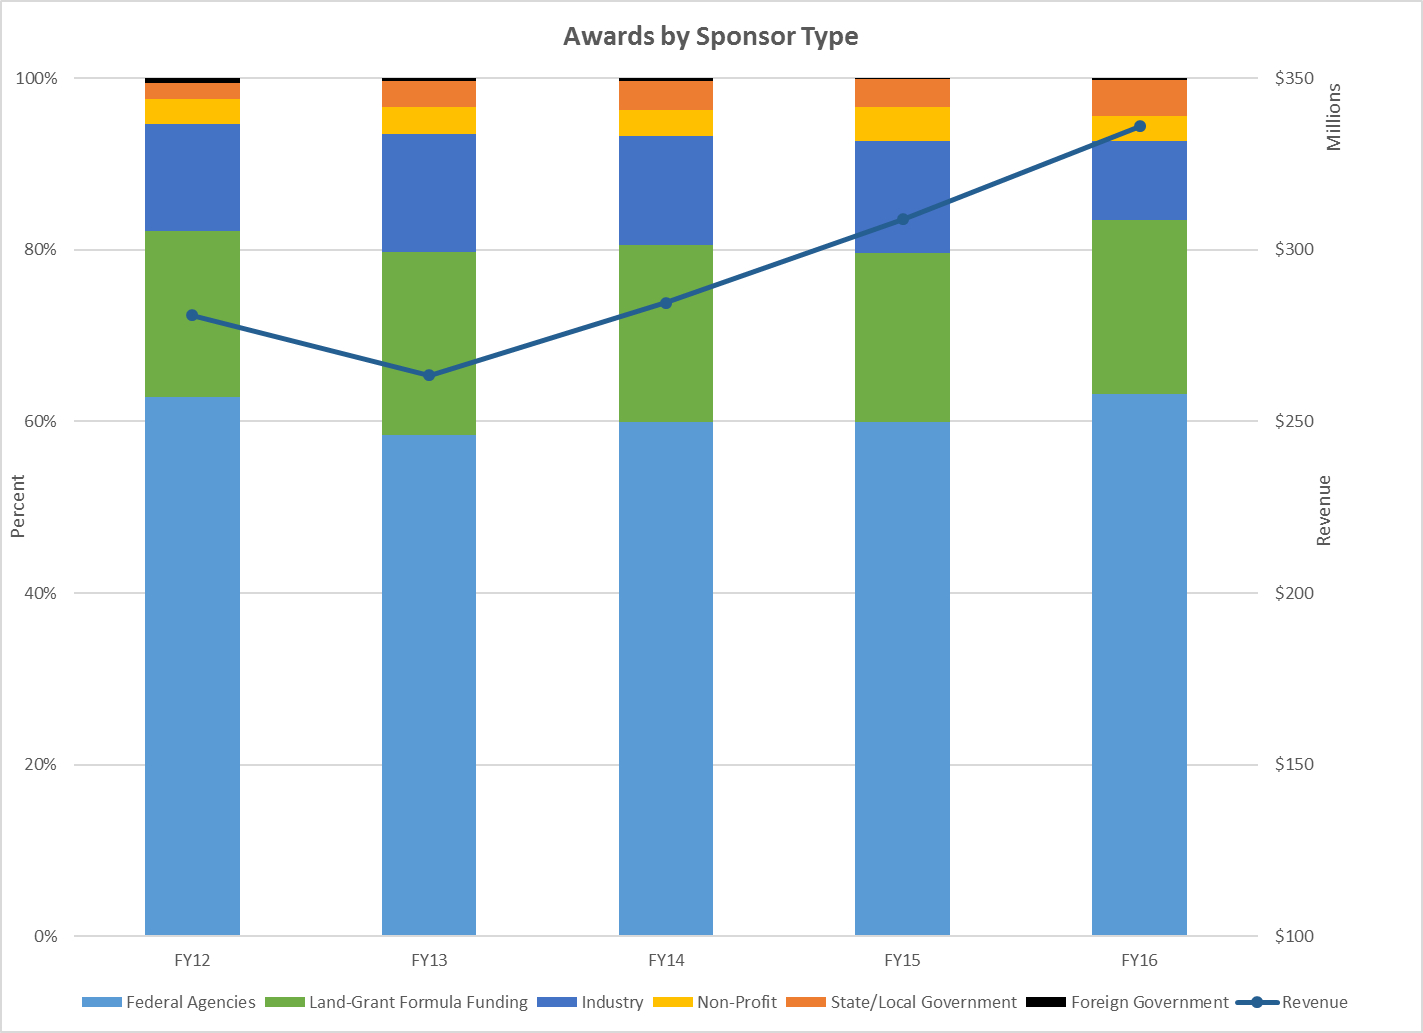 Awards by Sponsor Type